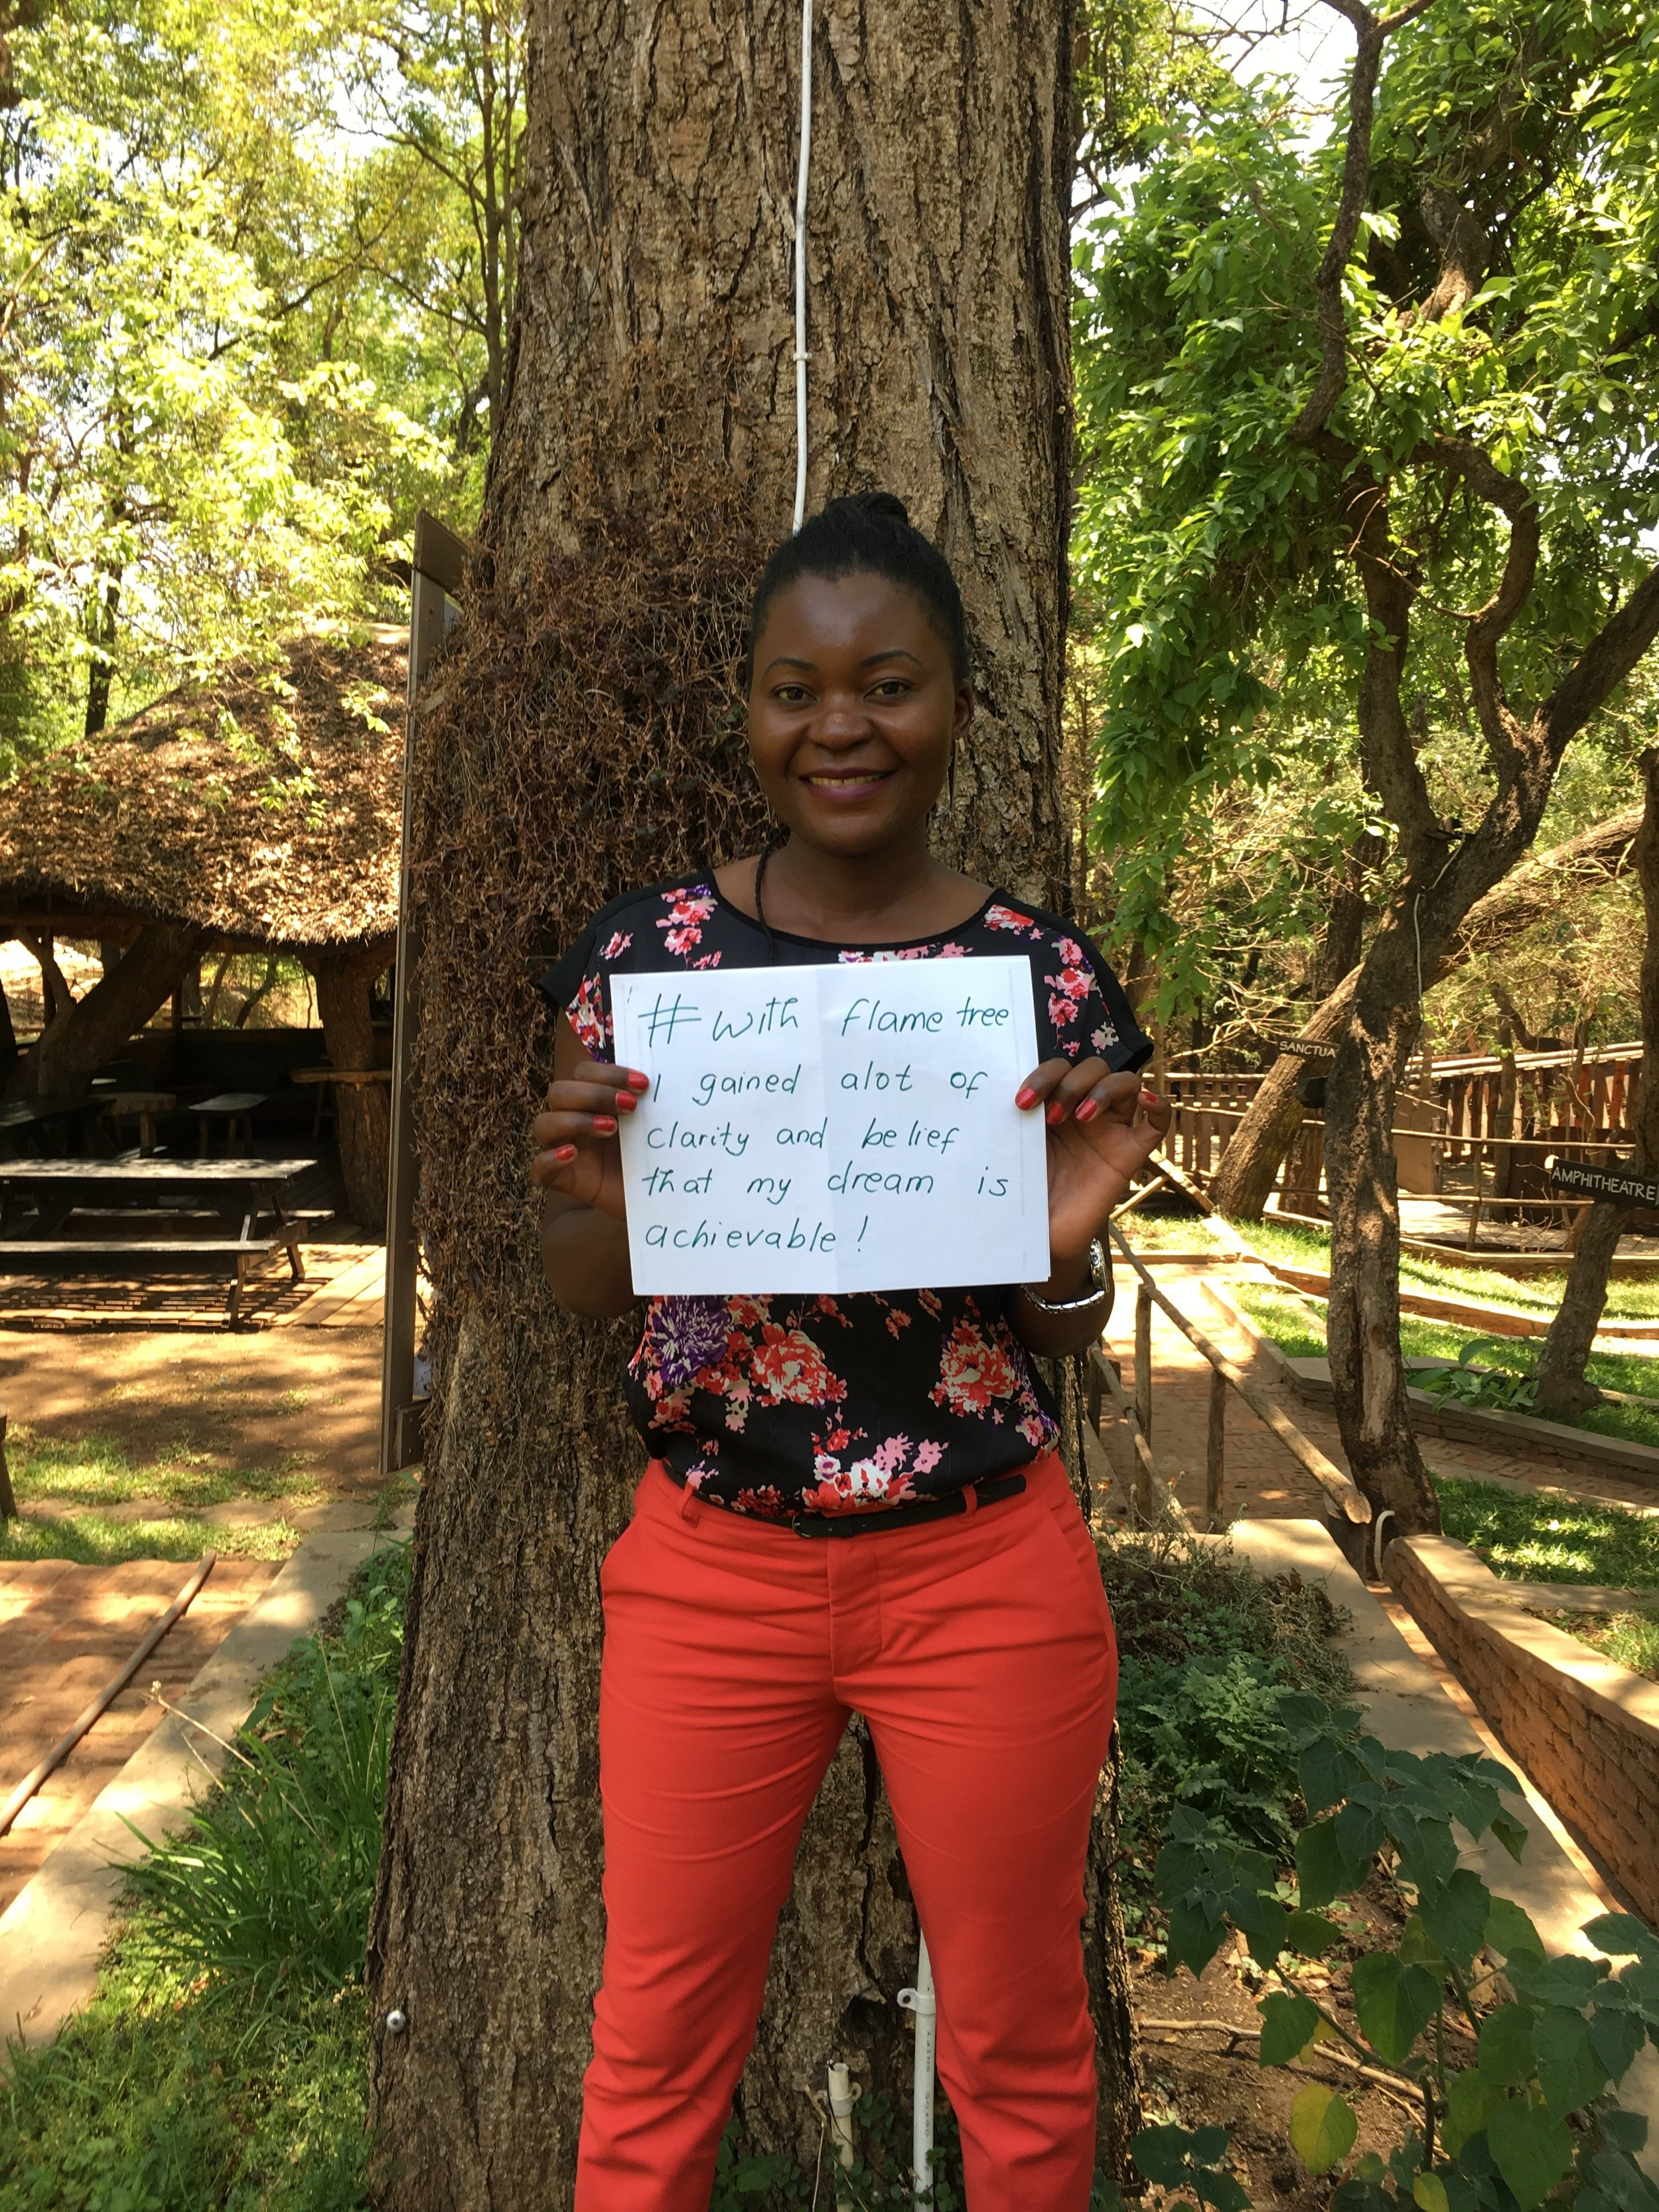 #withflametree Mphatso gained clarity and the belief that her dream is achievable.